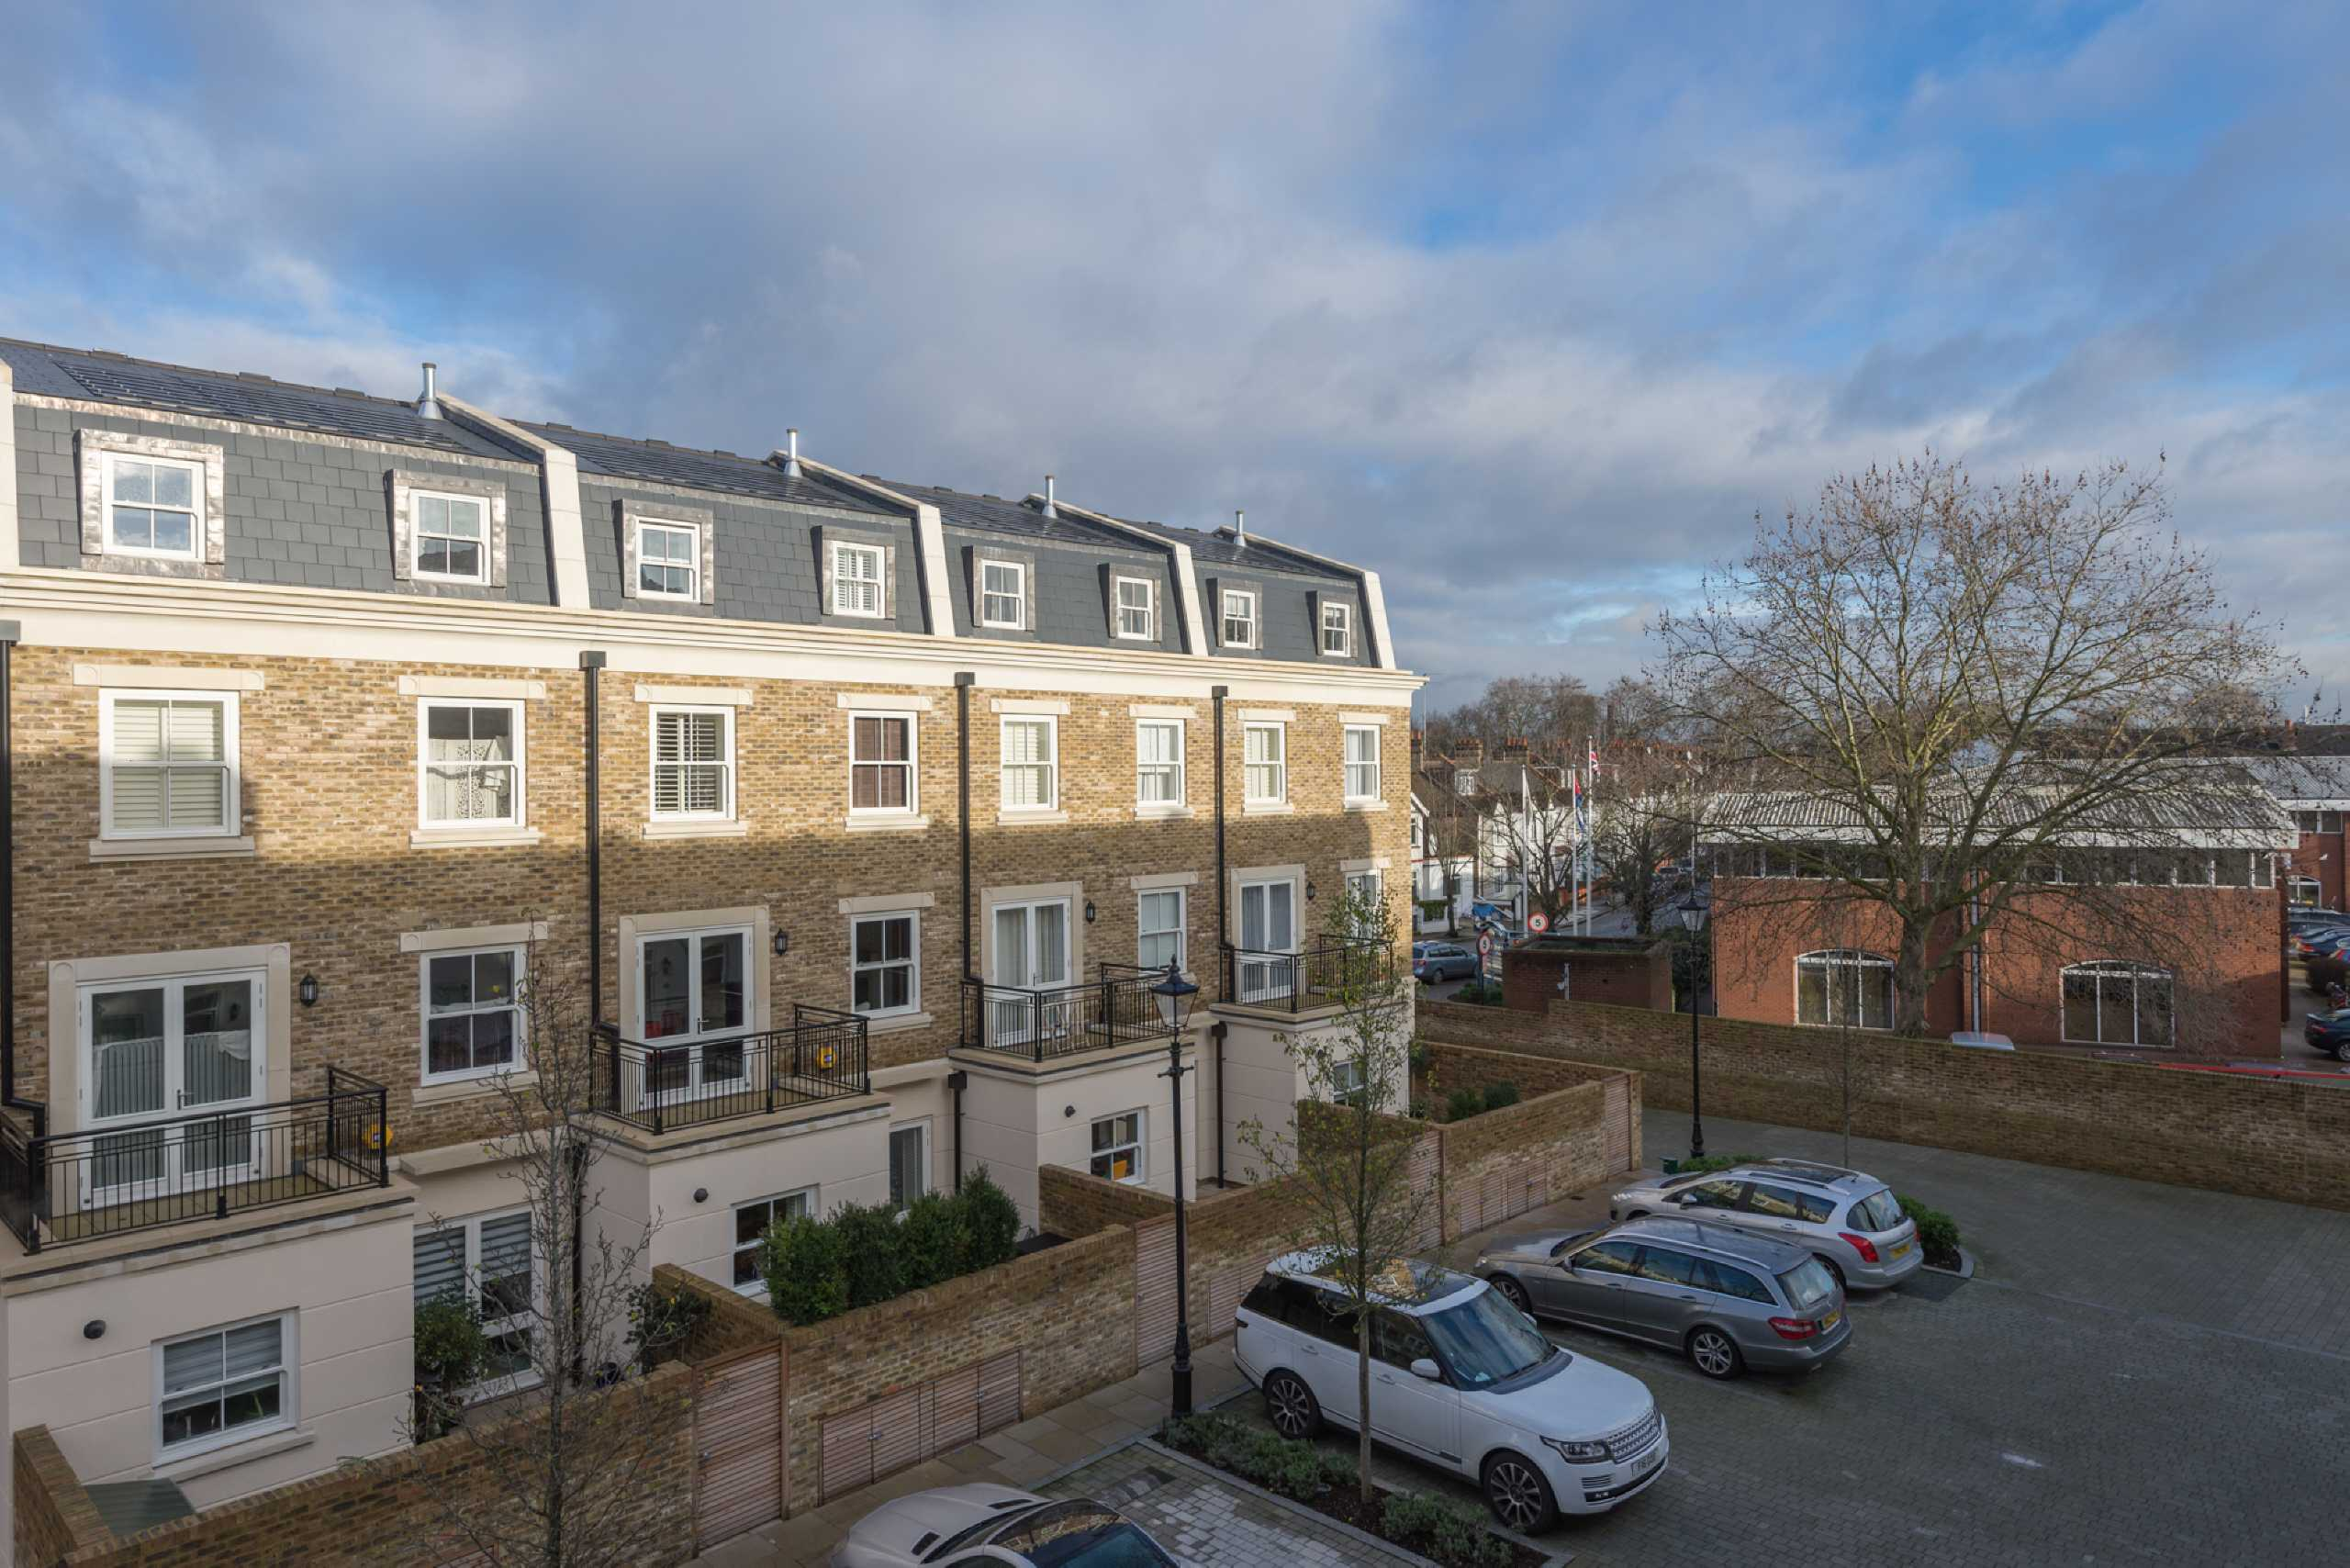 5 Bedrooms Terraced House for sale in Heathcote Gate, Sulivan Road, Fulham, London, SW6